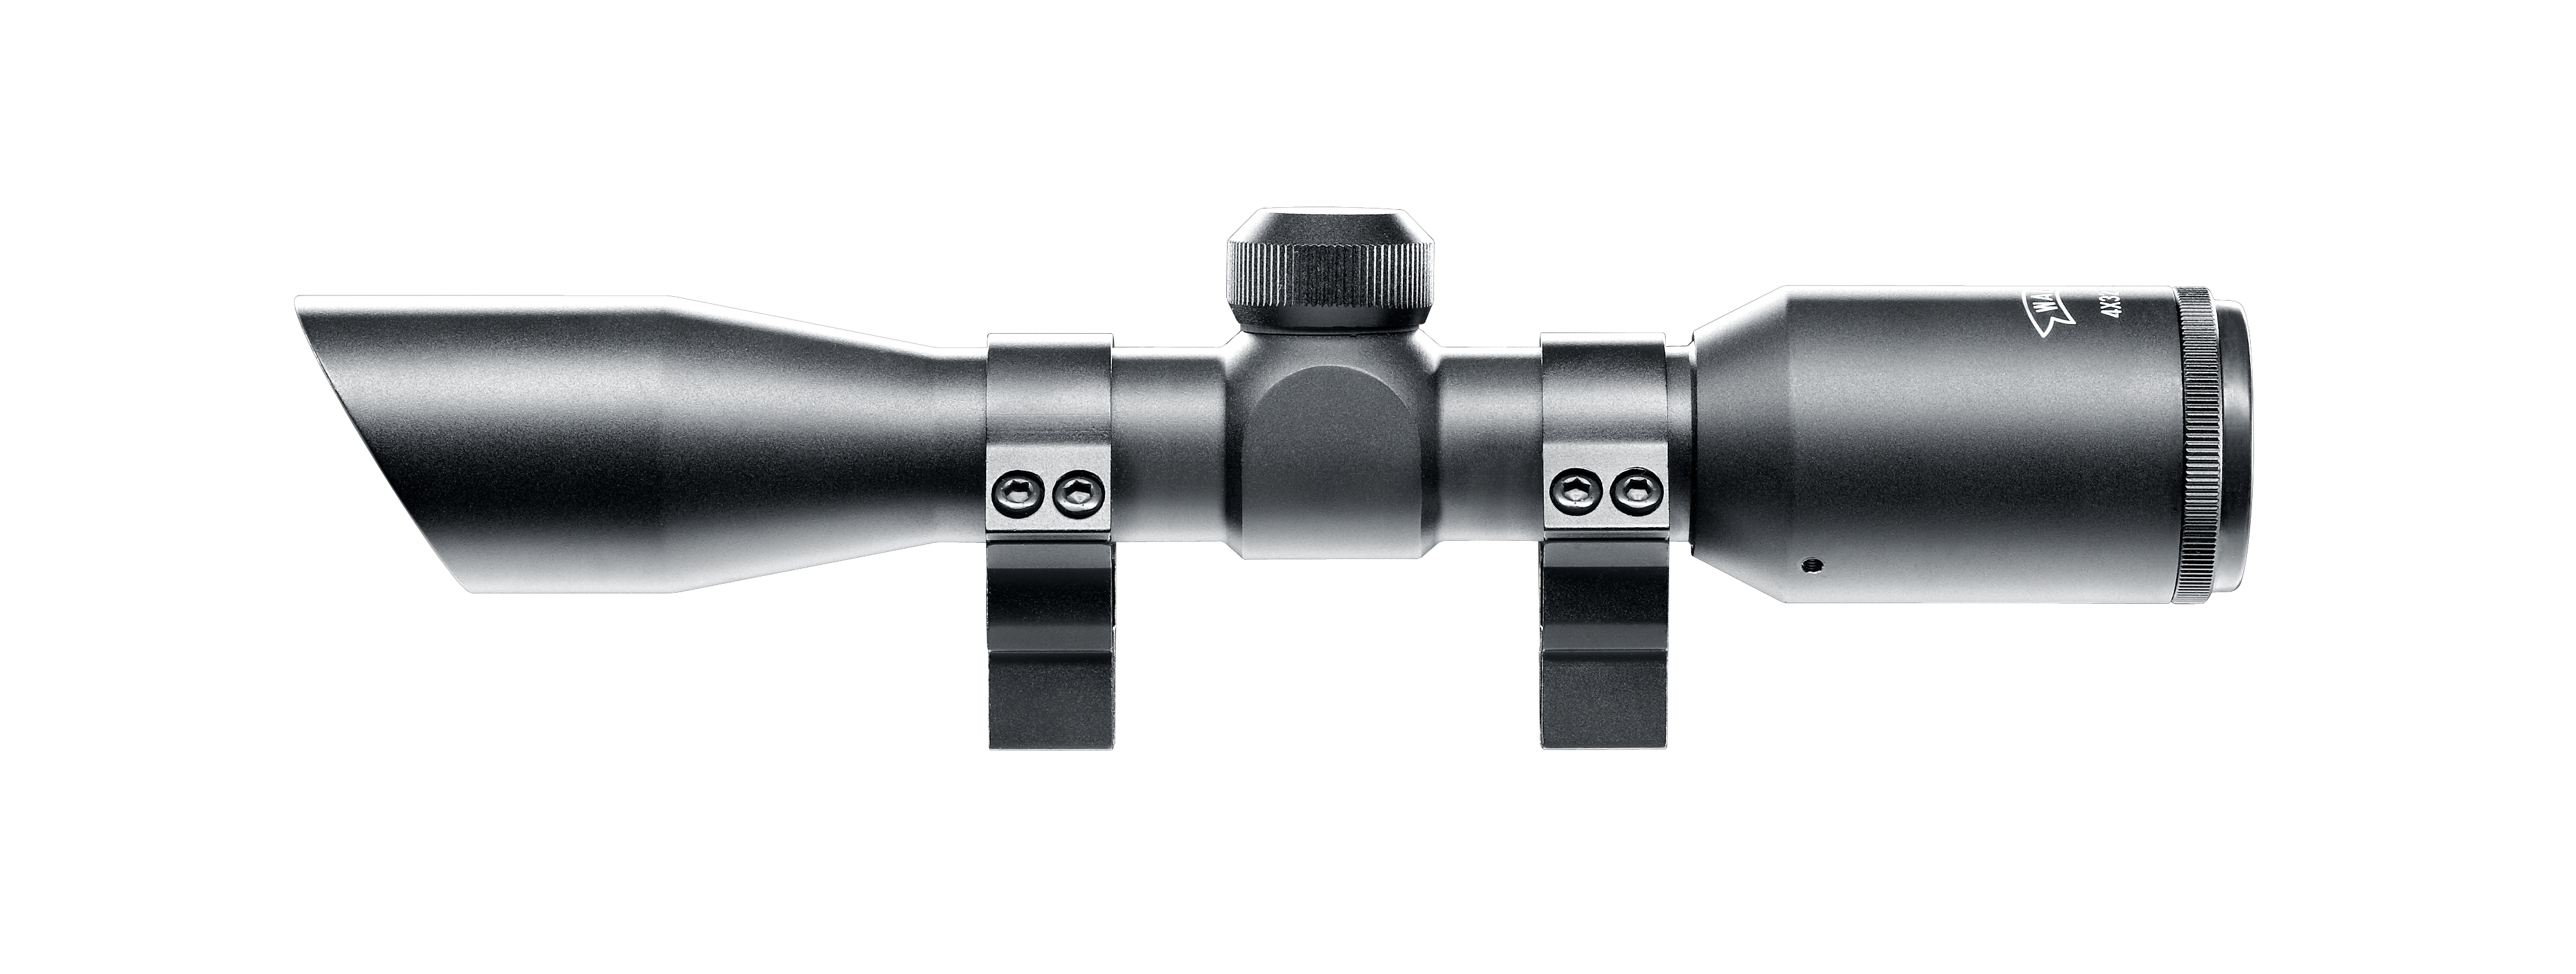 WALTHER (Umarex) Scope 4x32 Compact